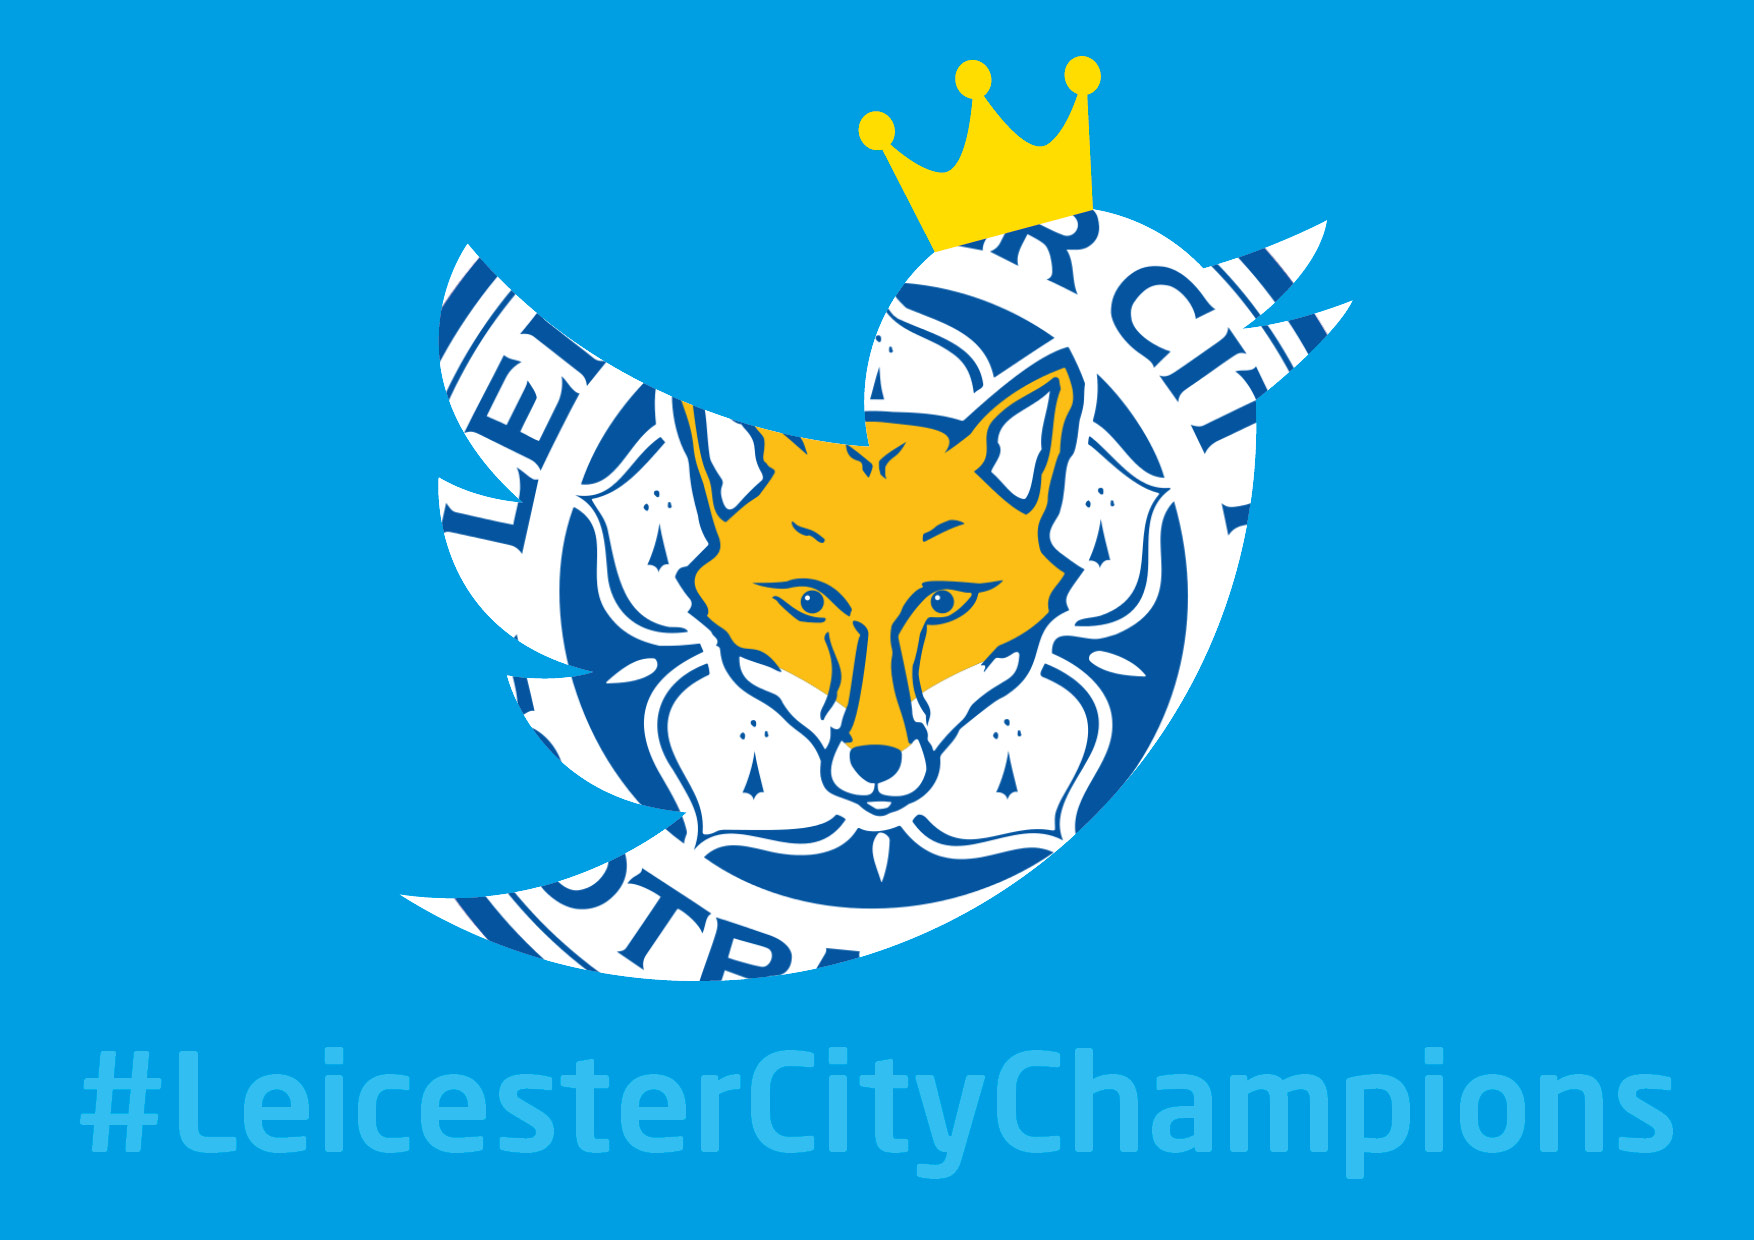 Twitter leicester